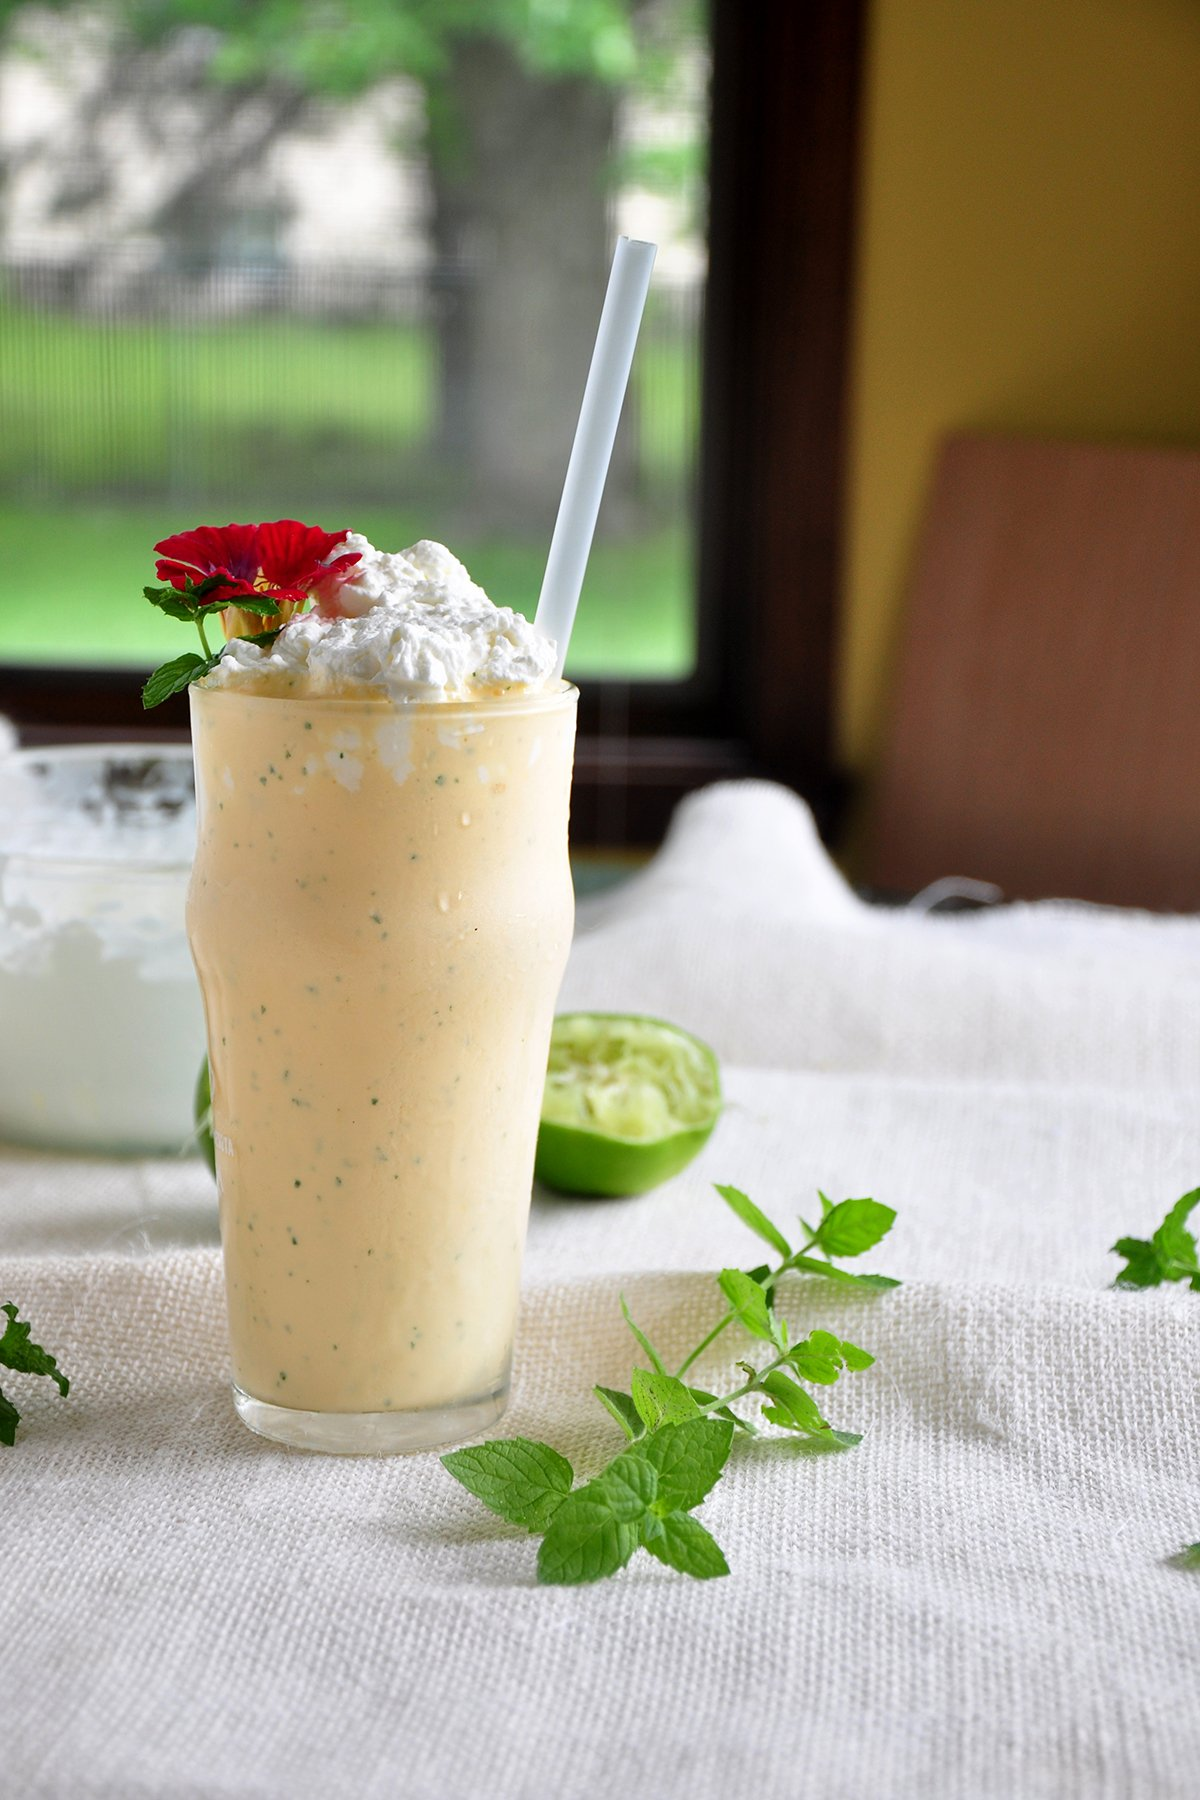 This an Ice Cream Mint Margarita and shot from the side. There is mint and lemon in the background, as well as a window.